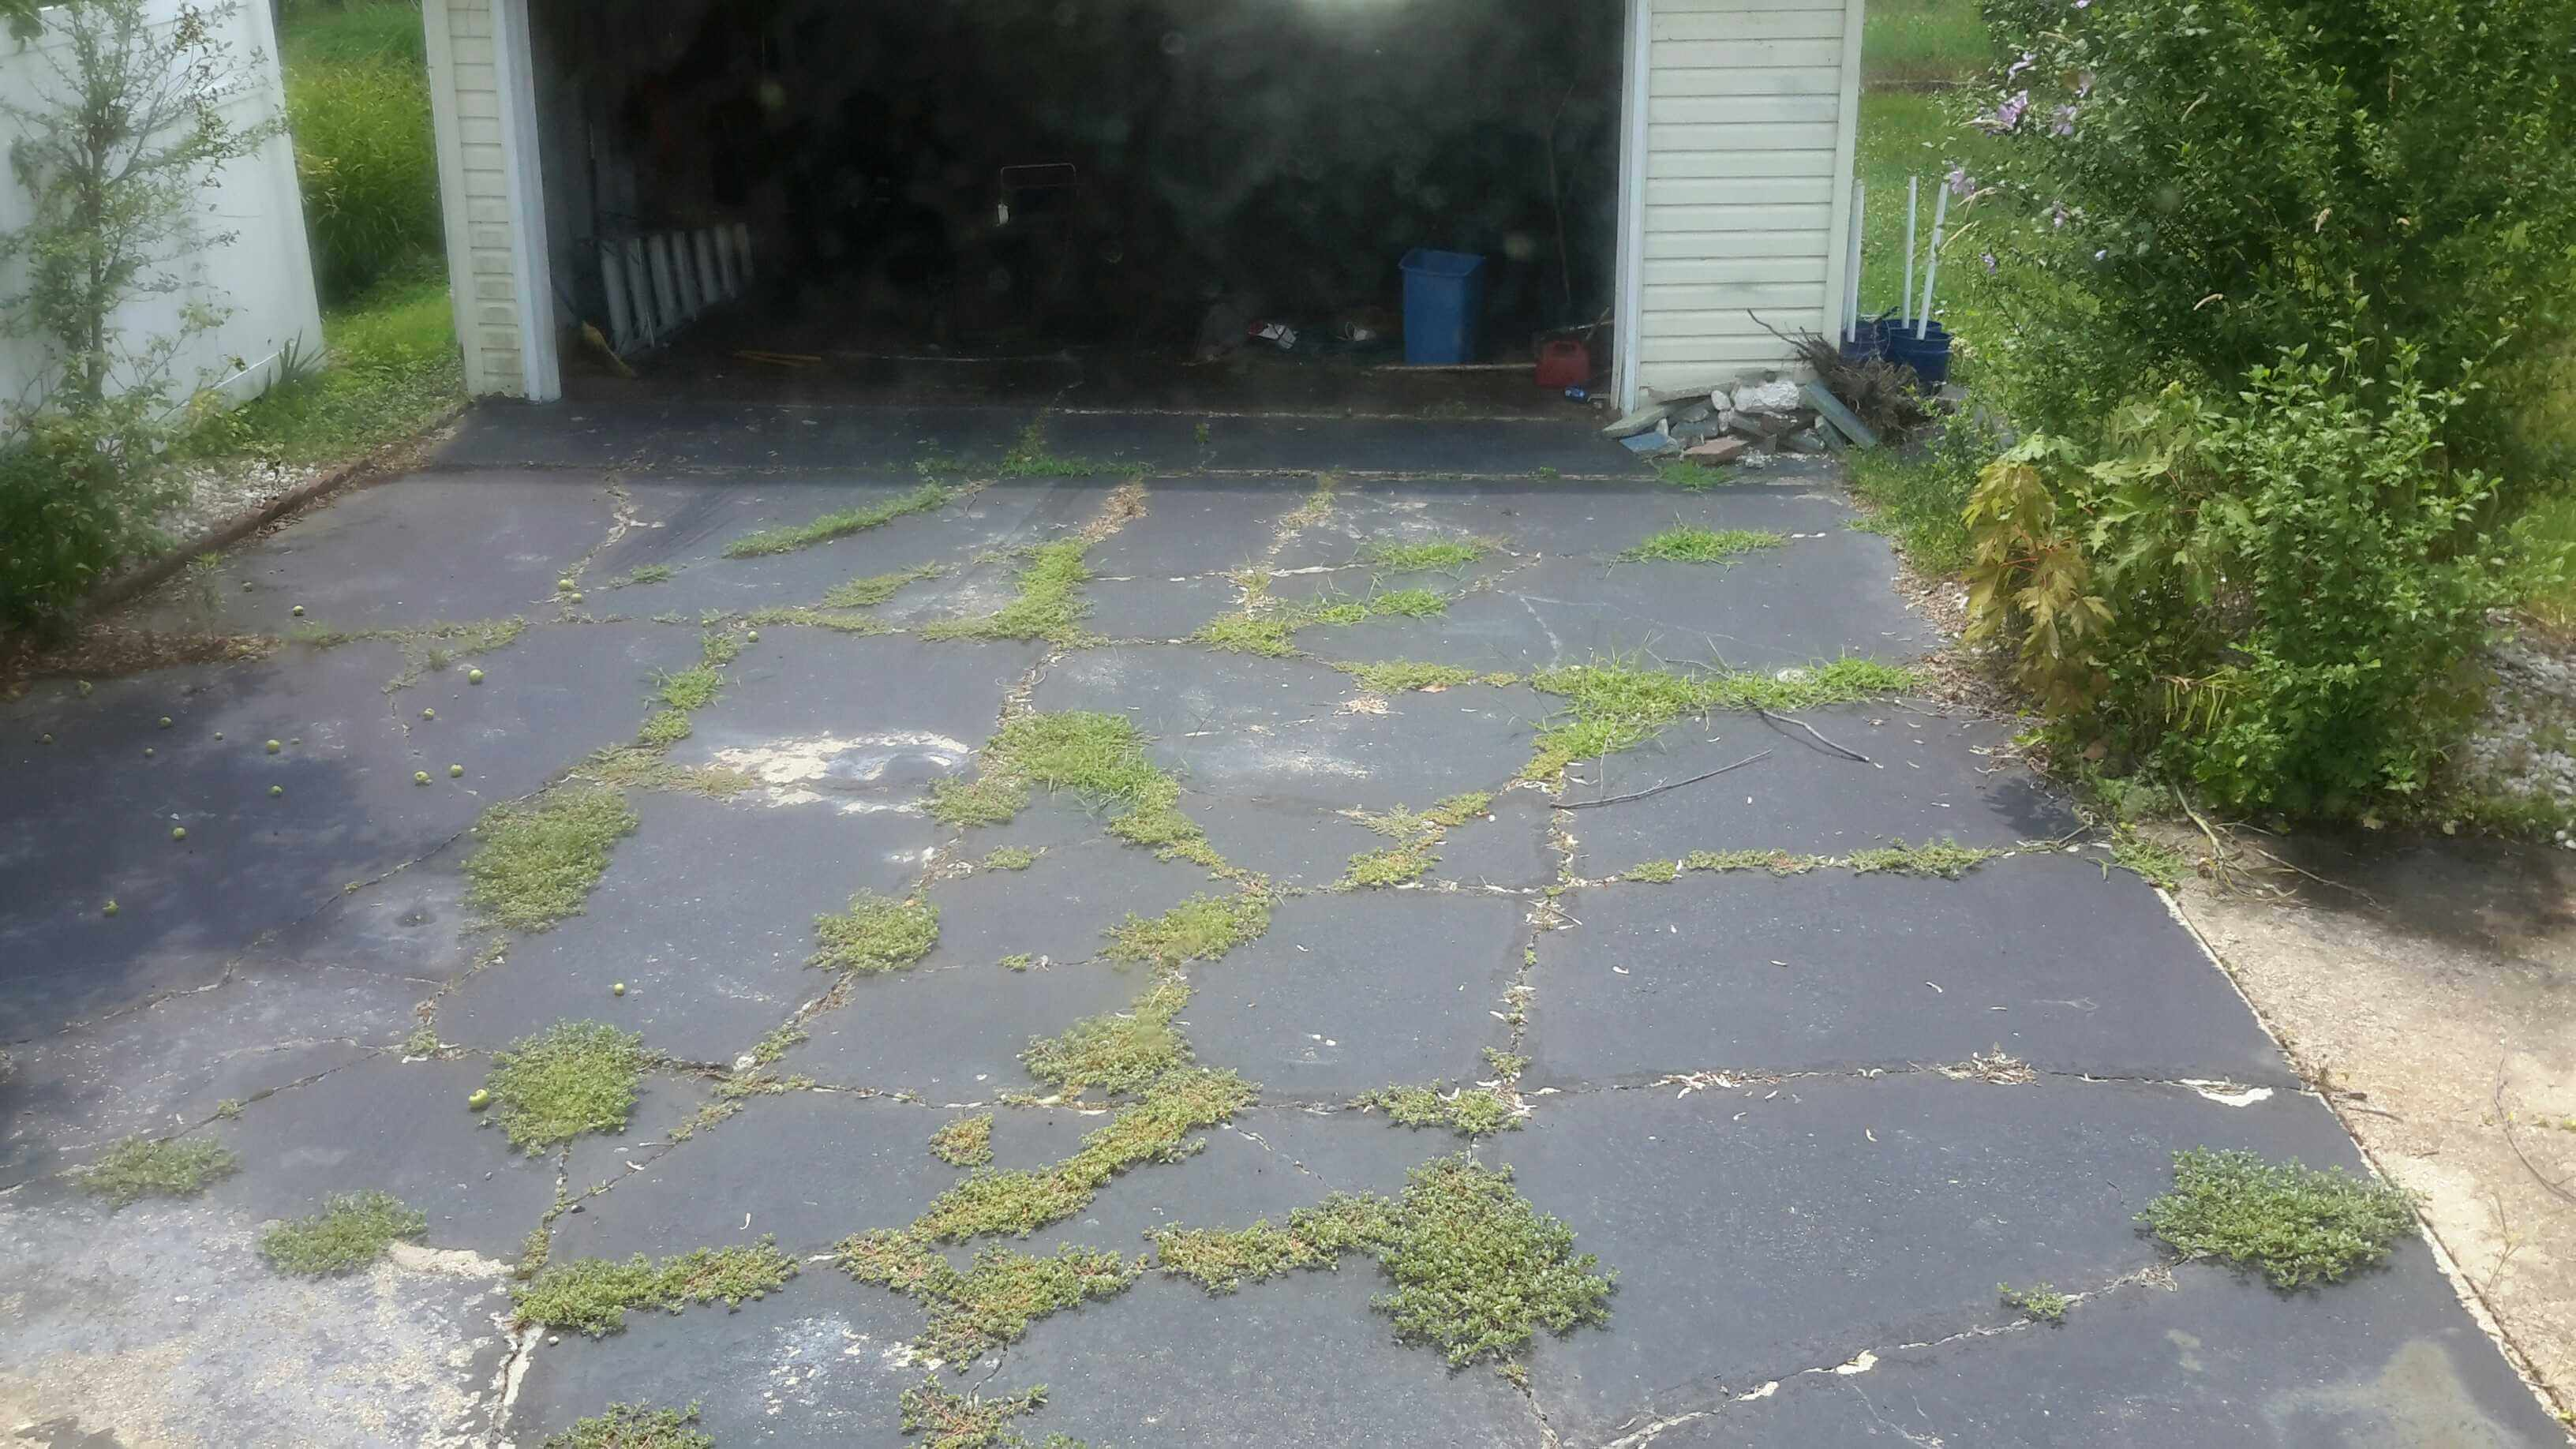 blacktop driveway with grass growing in cracks